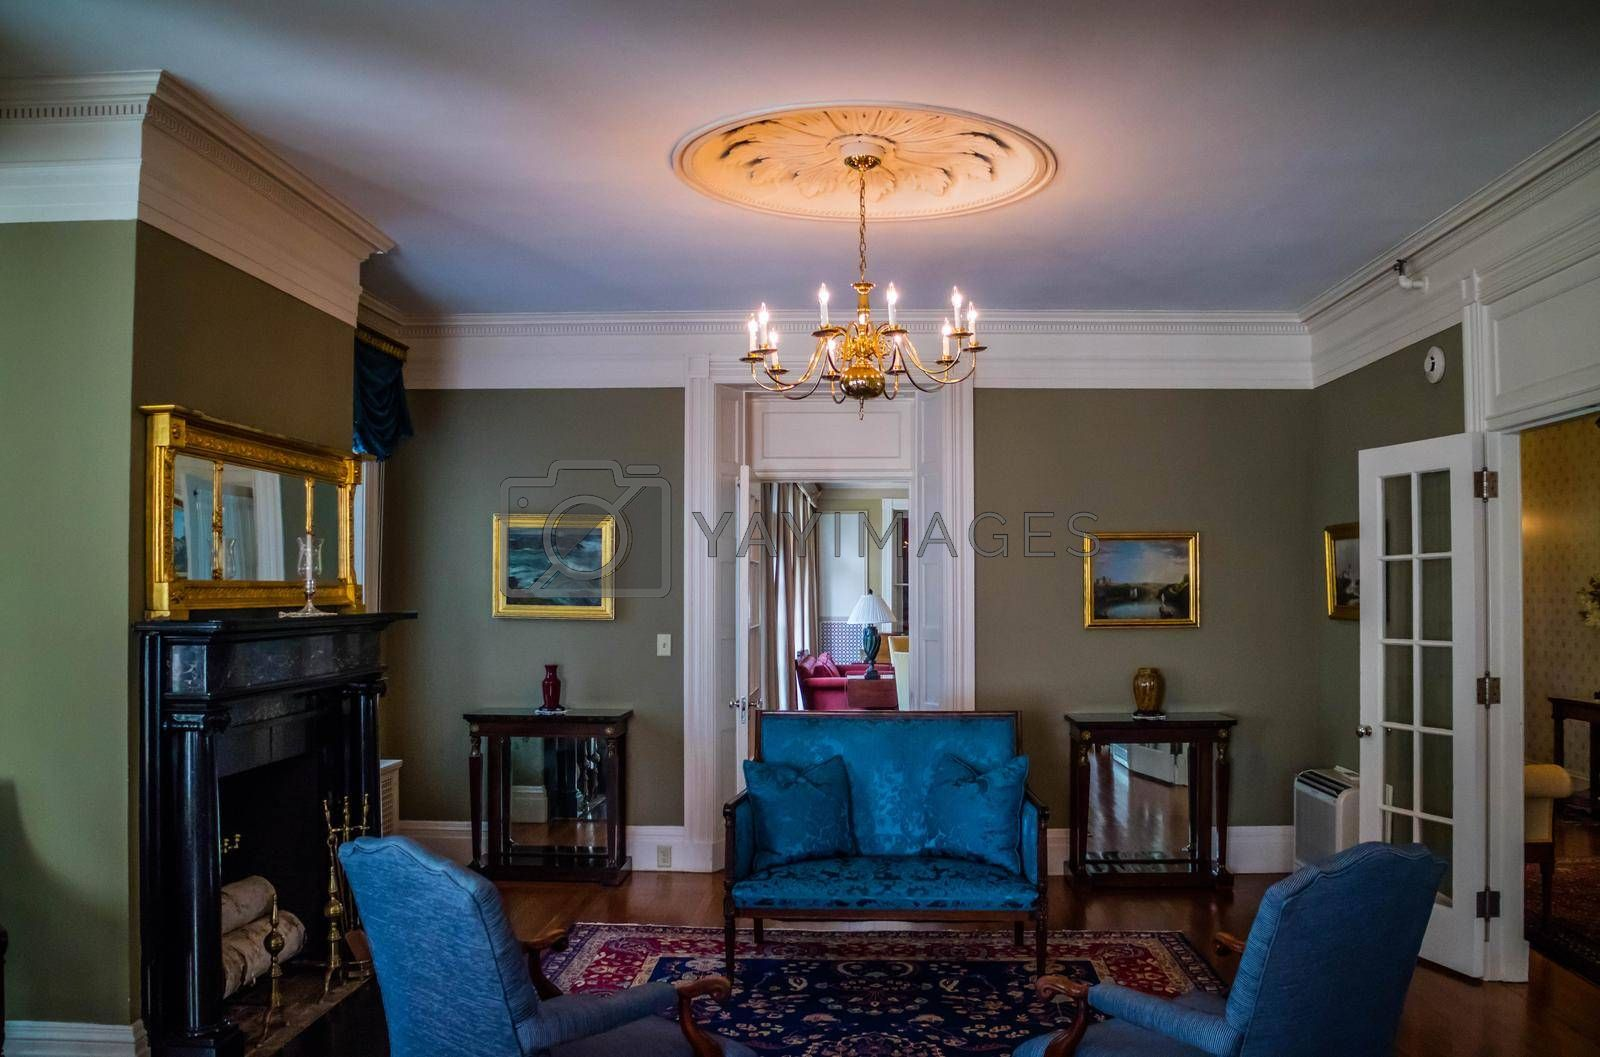 Royalty free image of Augusta, ME, USA - August 8, 2018: The living area of Blaine's House by cherialguire